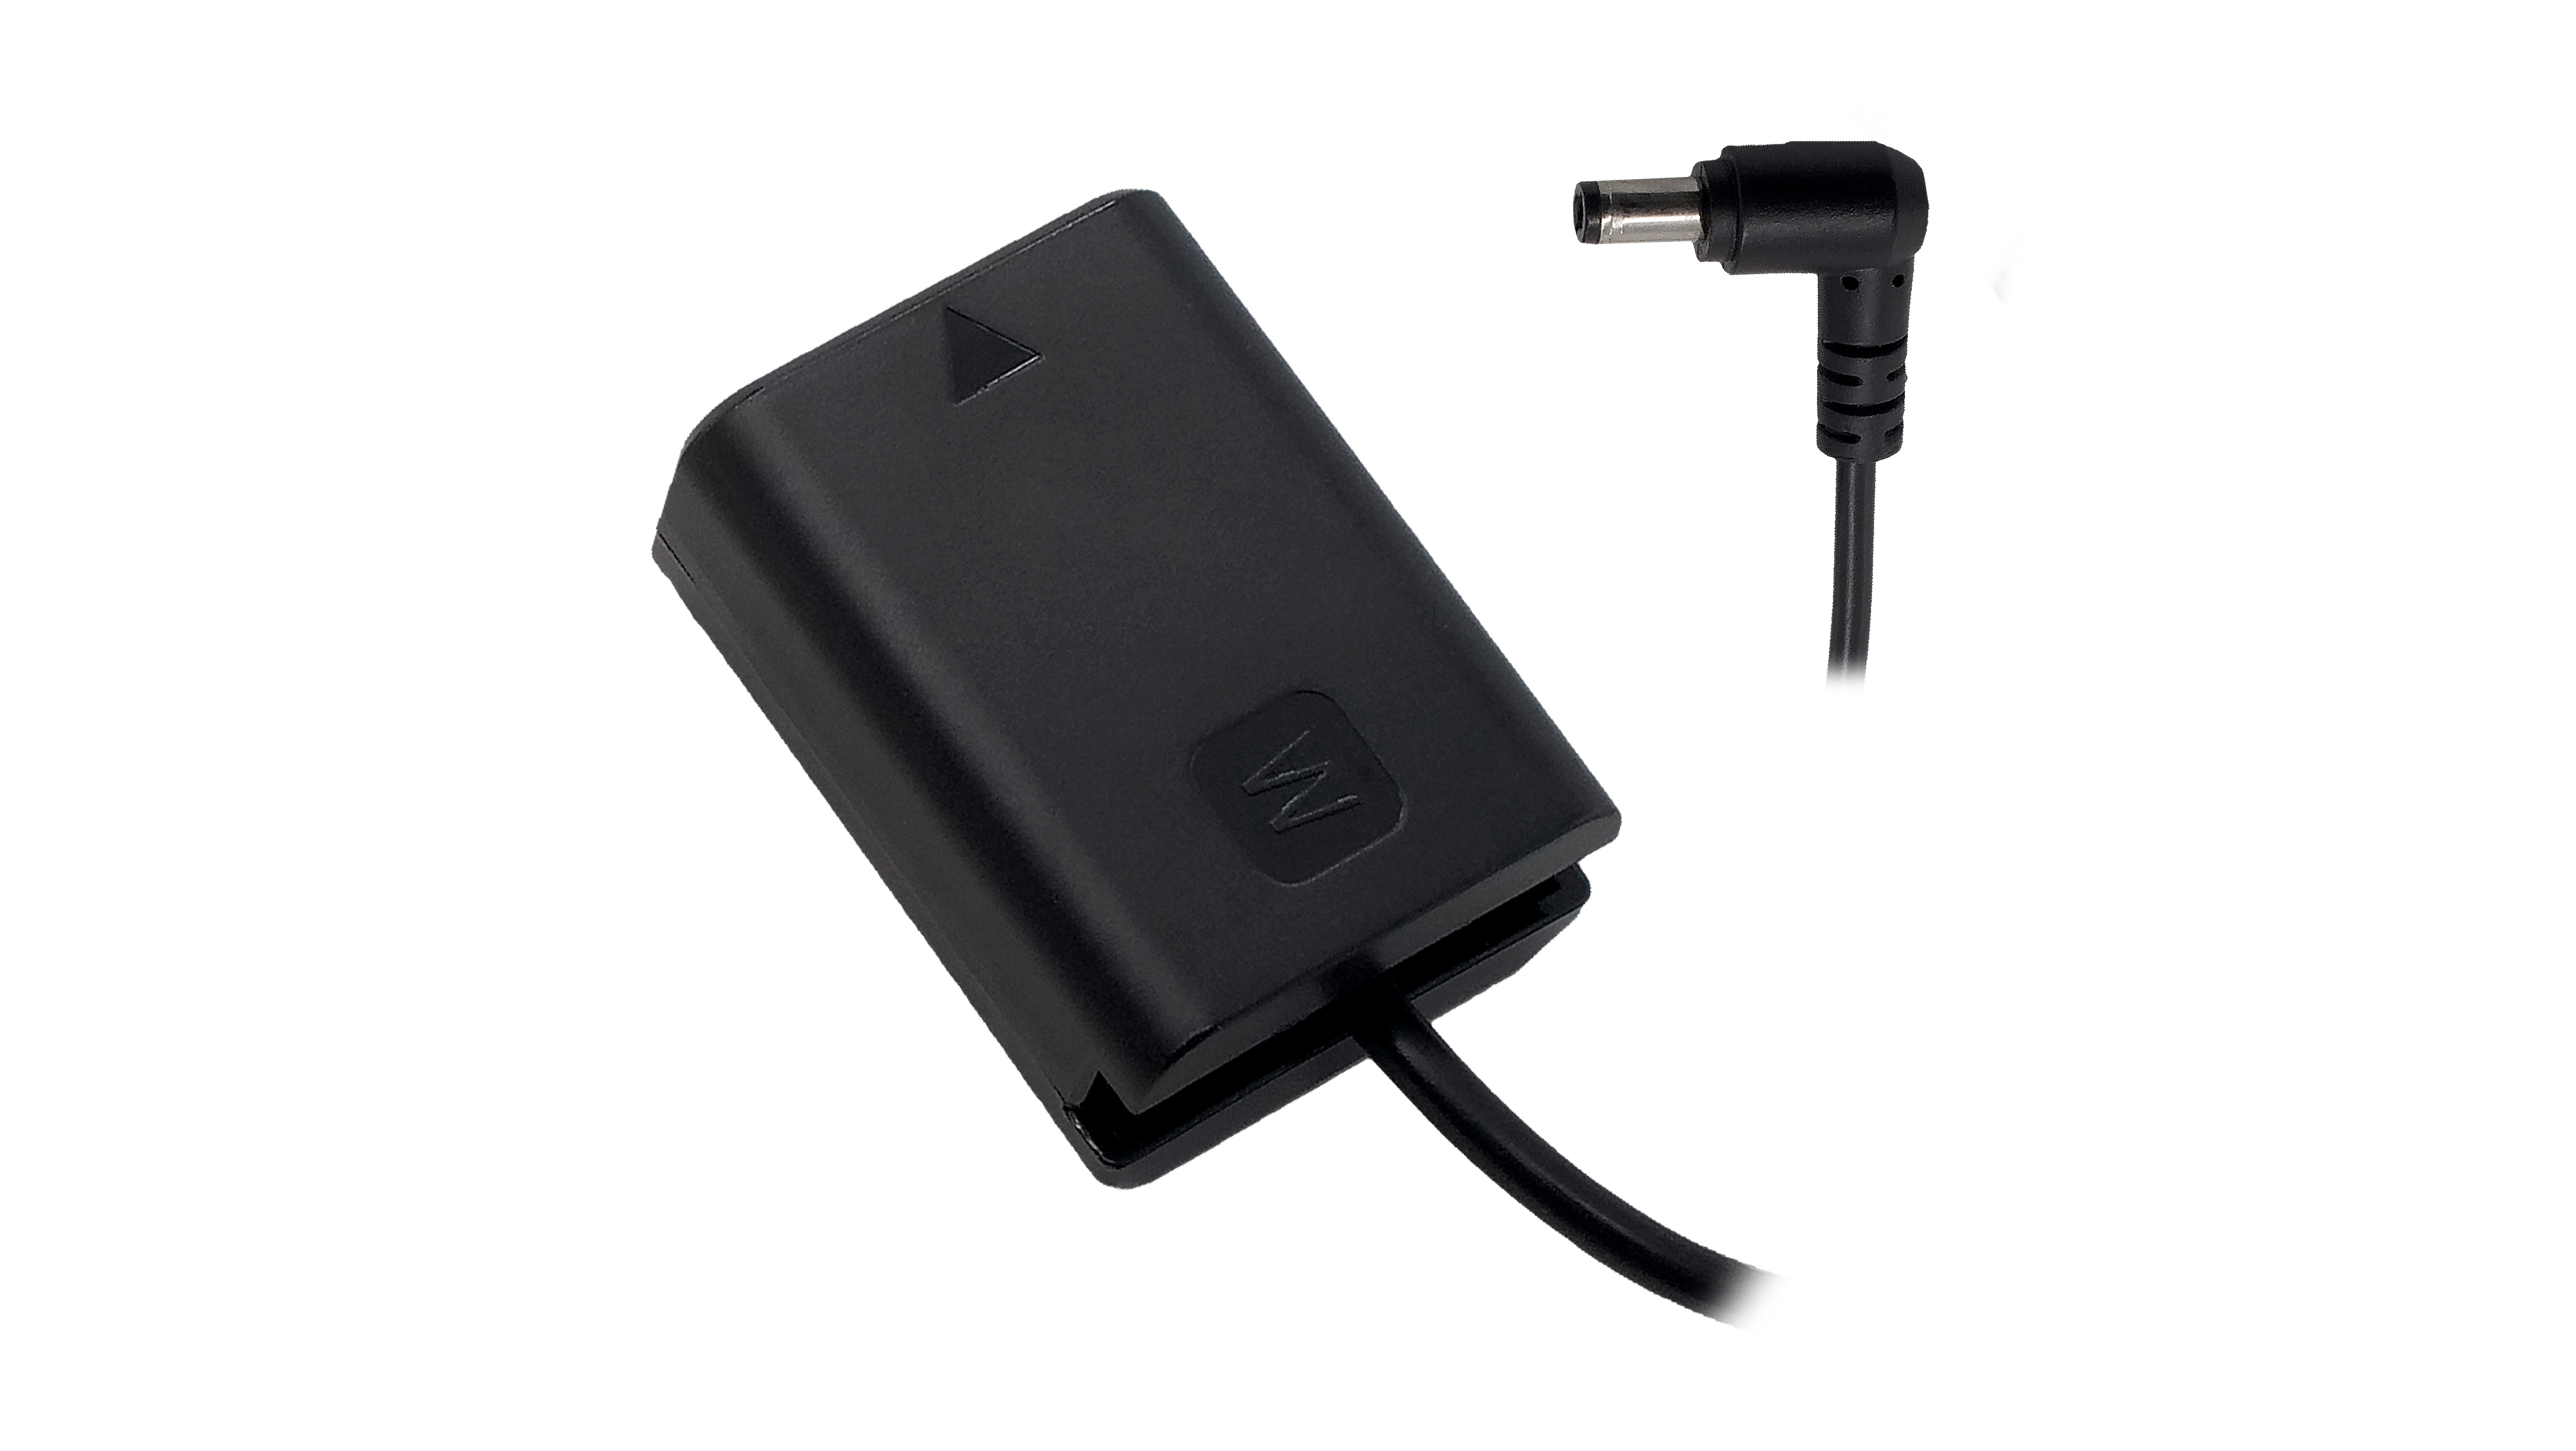 Sony NP-FW50 (A6/A7 Series) Dummy Battery to 5.5/2.5mm DC Male Cable